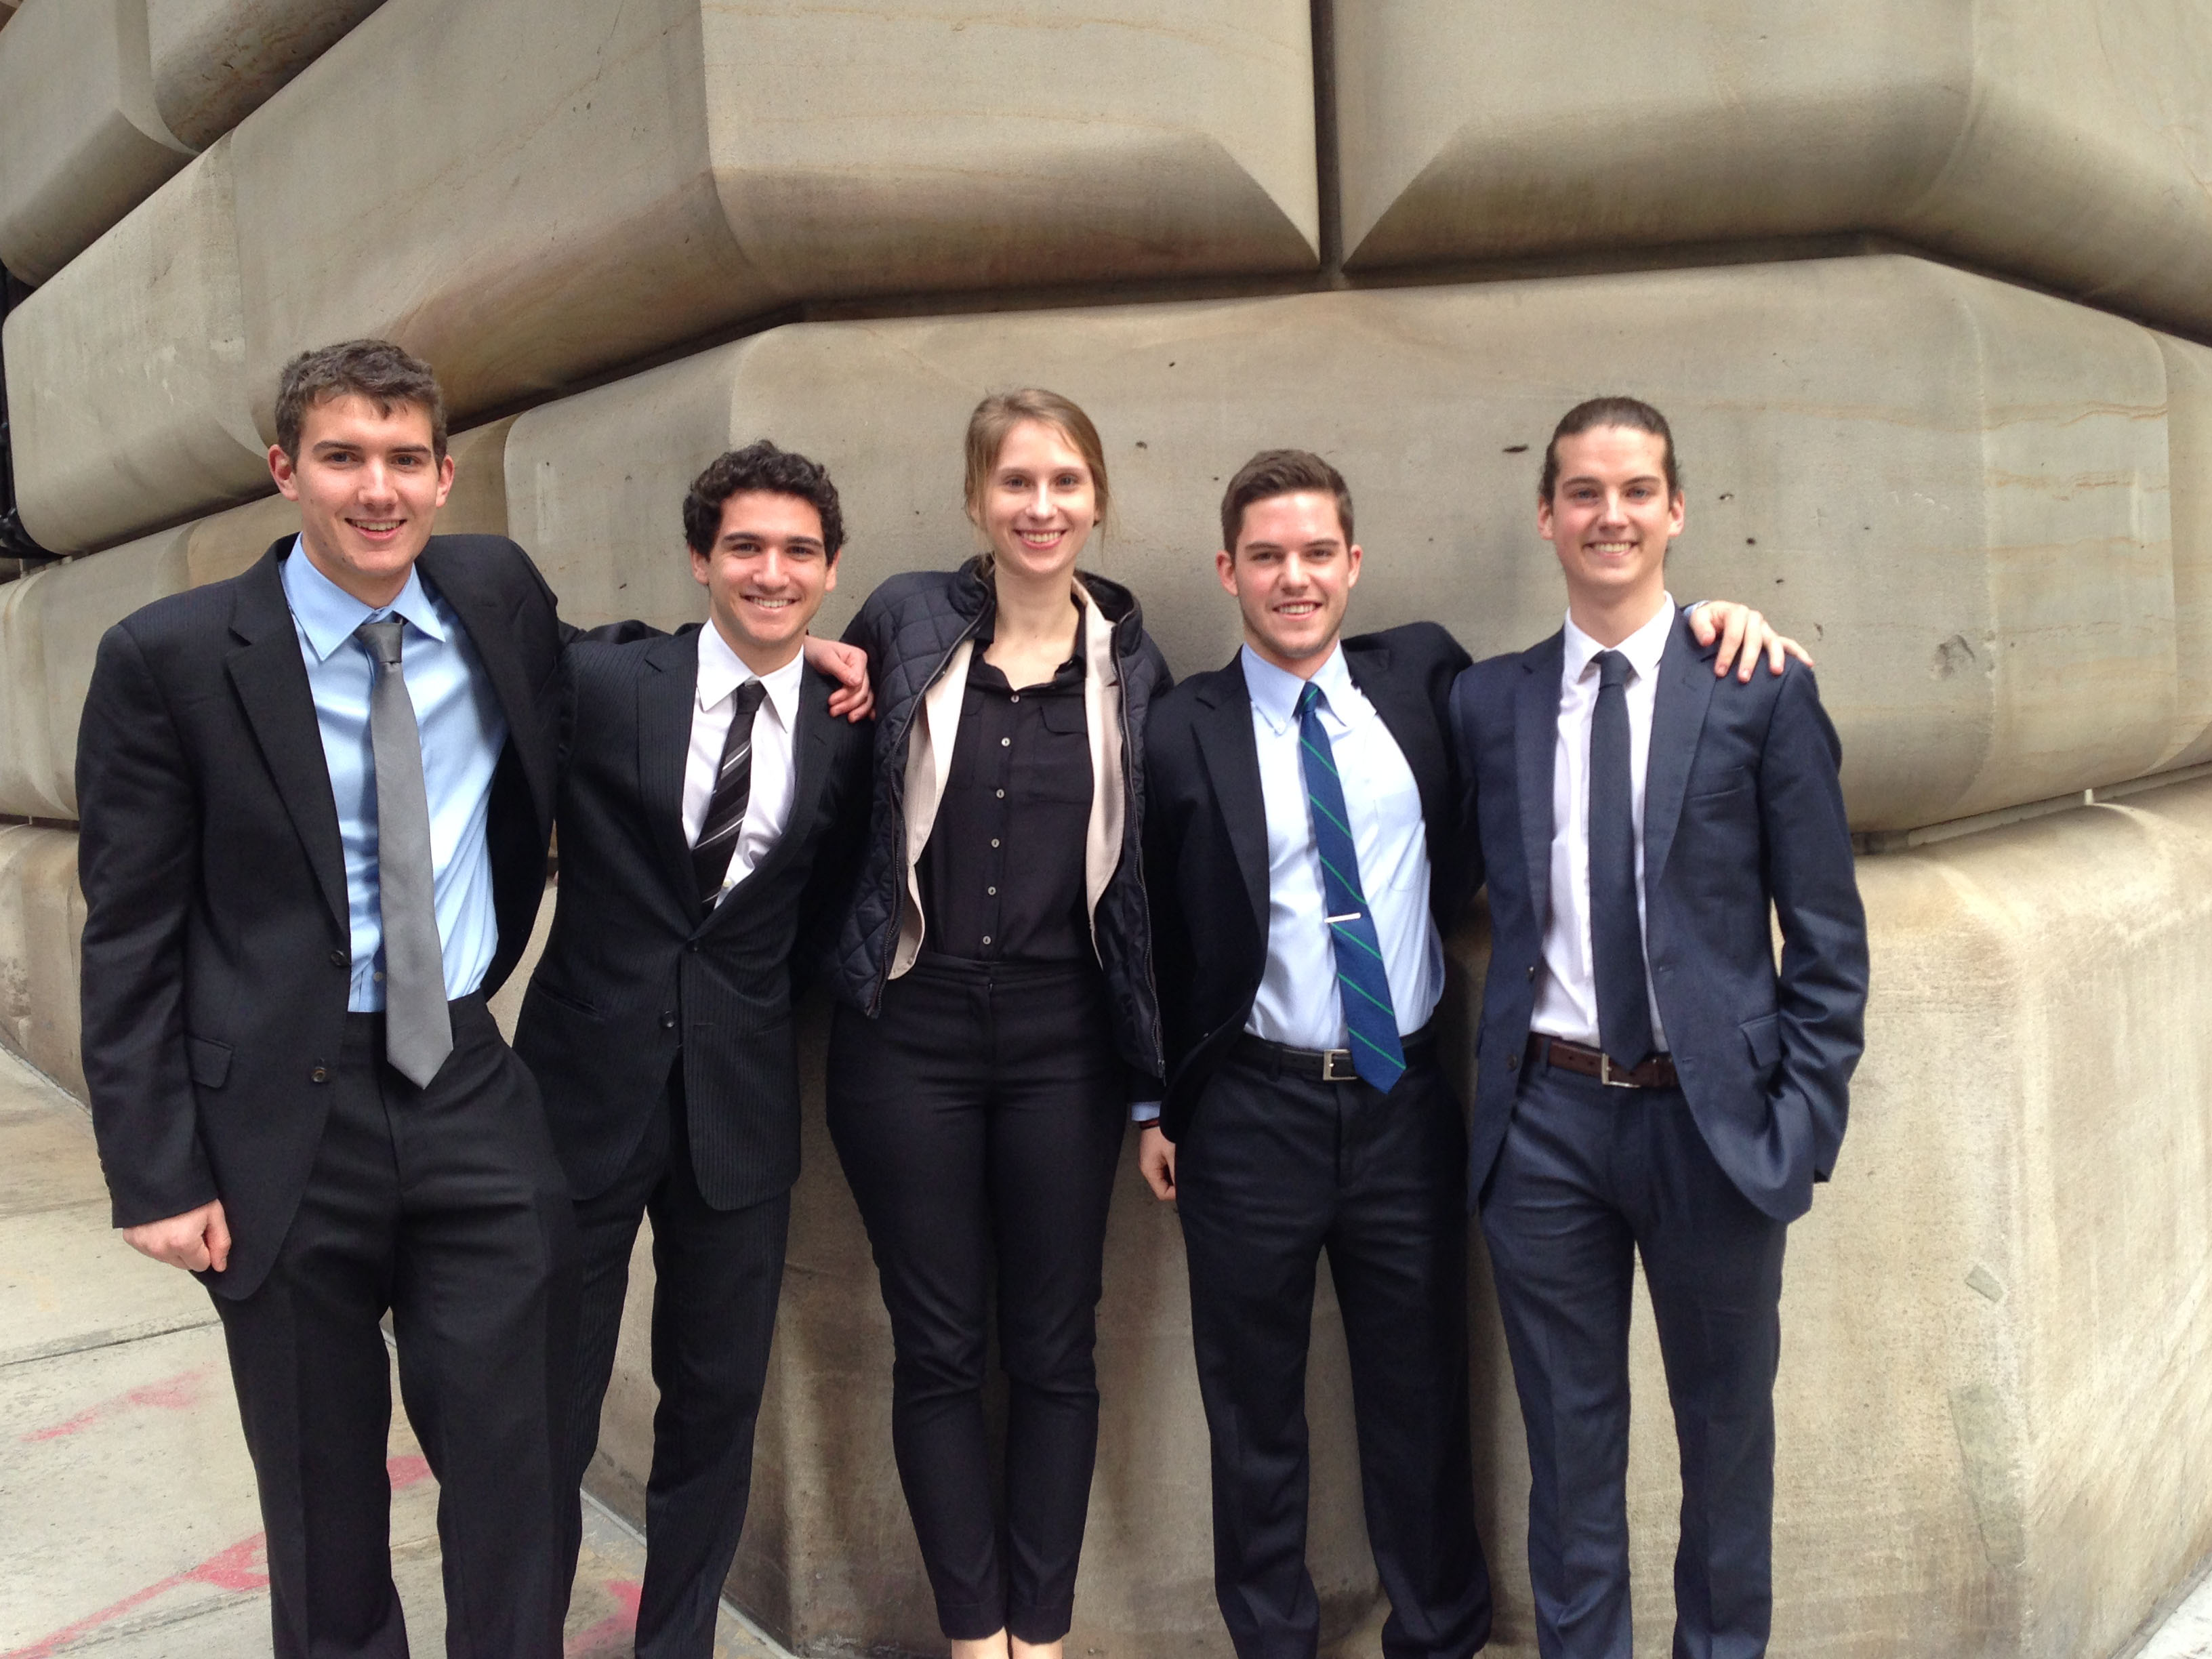 College Fed Challenge semifinalists James Bryan '16, Michael Akselrad '16, Angelika Wieliki '15, Conor Fox '15 and Brian Cameron '15.